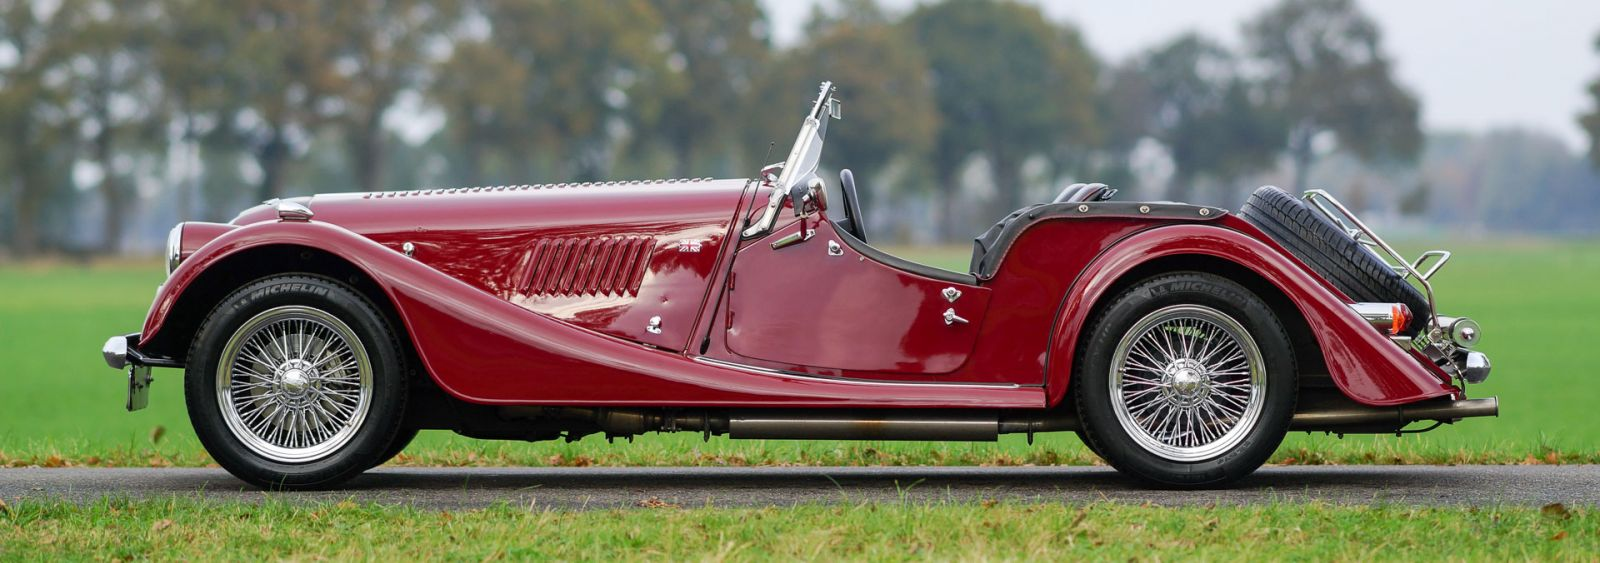 Morgan  8 'wide body', 1995